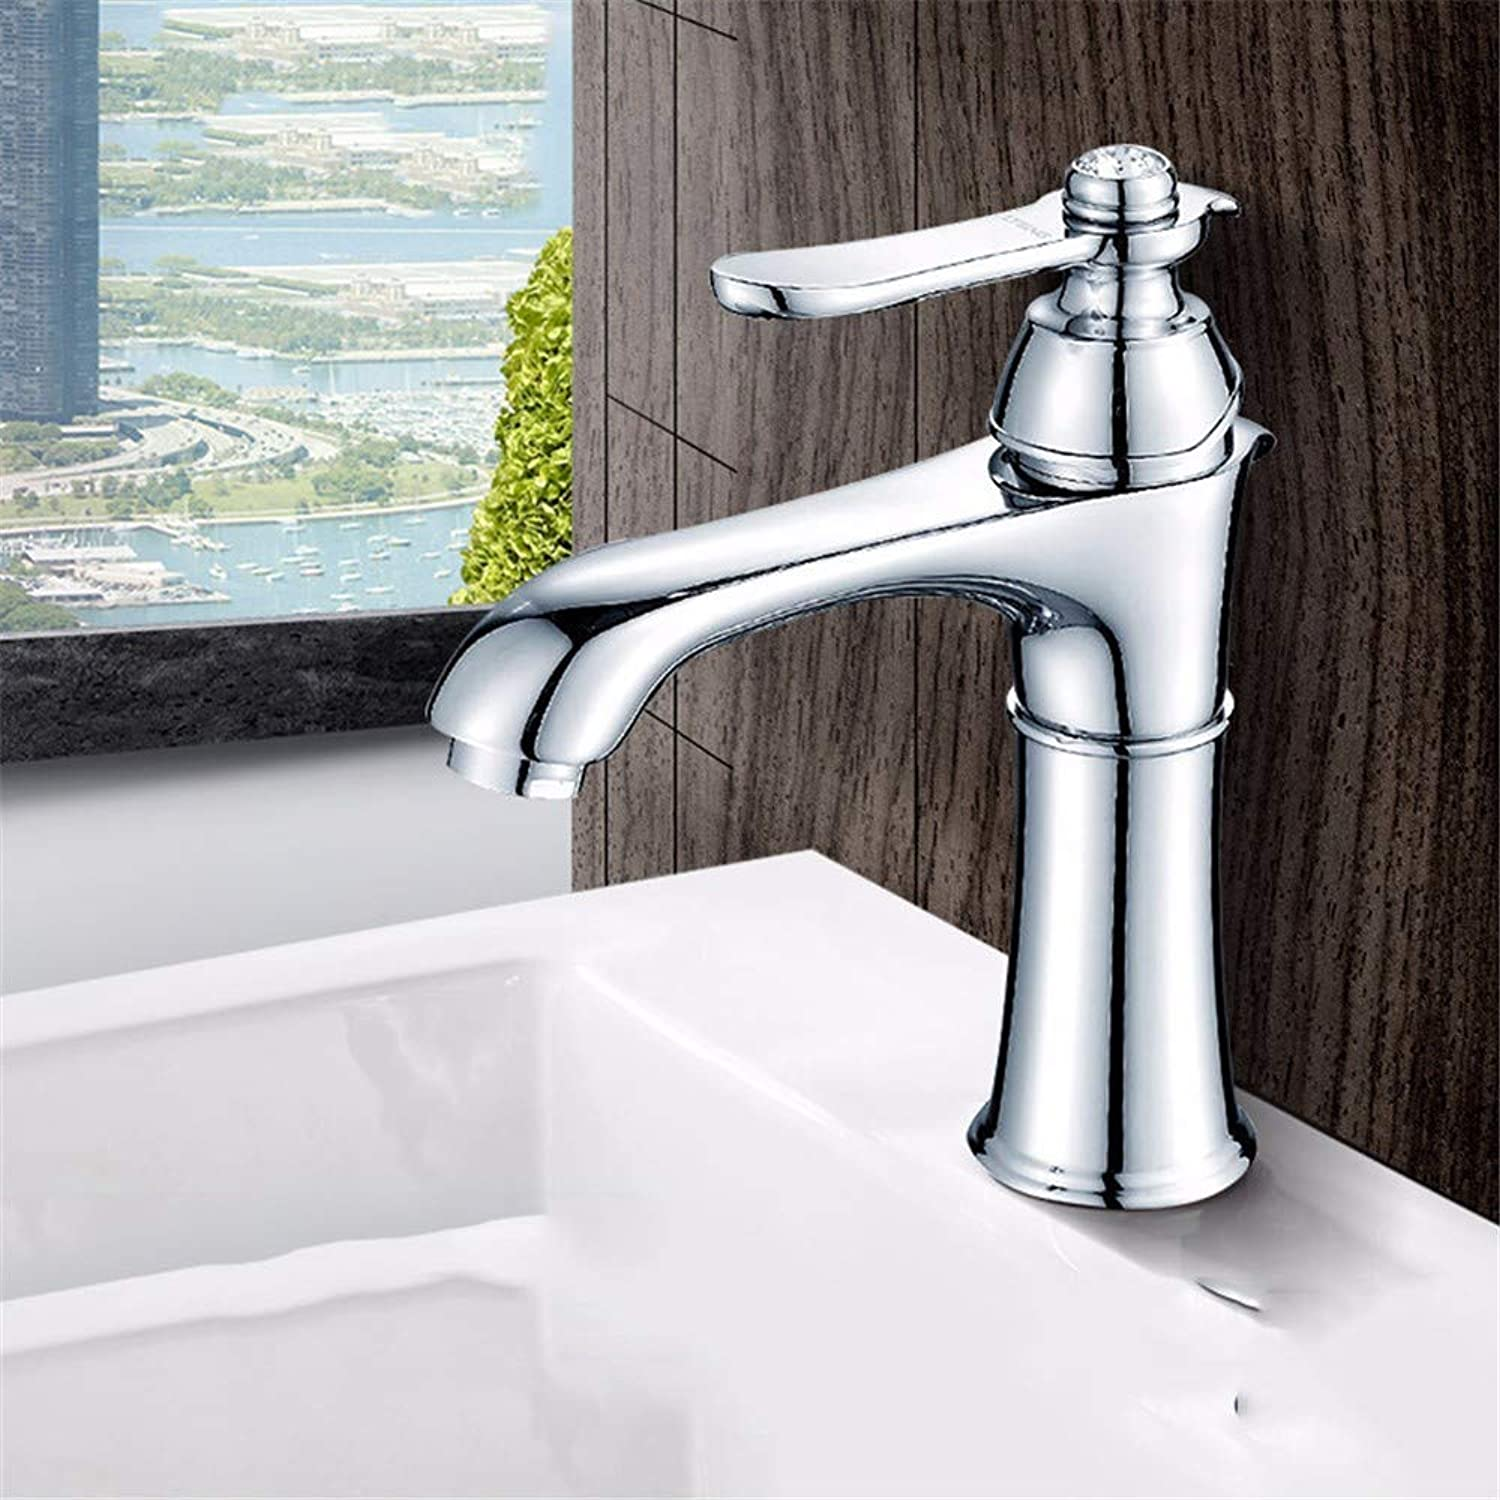 Pyty123-Faucet Washbasin Faucet Hot And Cold Water Bathroom Wash Basin Double Hole Household Washbasin Washbasin